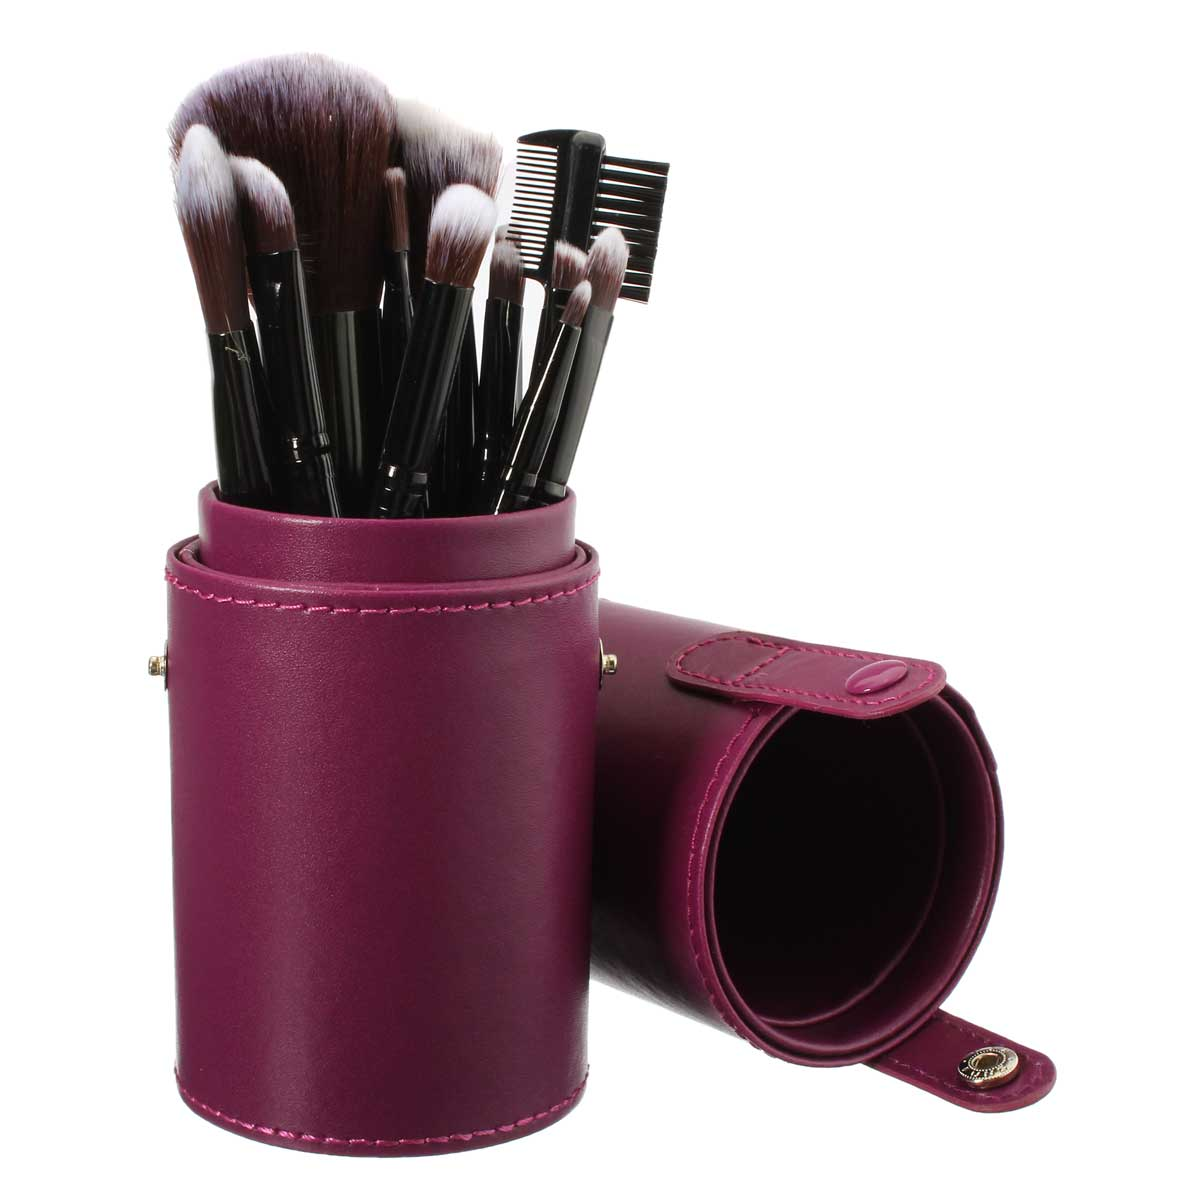 New Empty Portable Makeup Brush Round Pen Holder Cosmetic Tool Pu